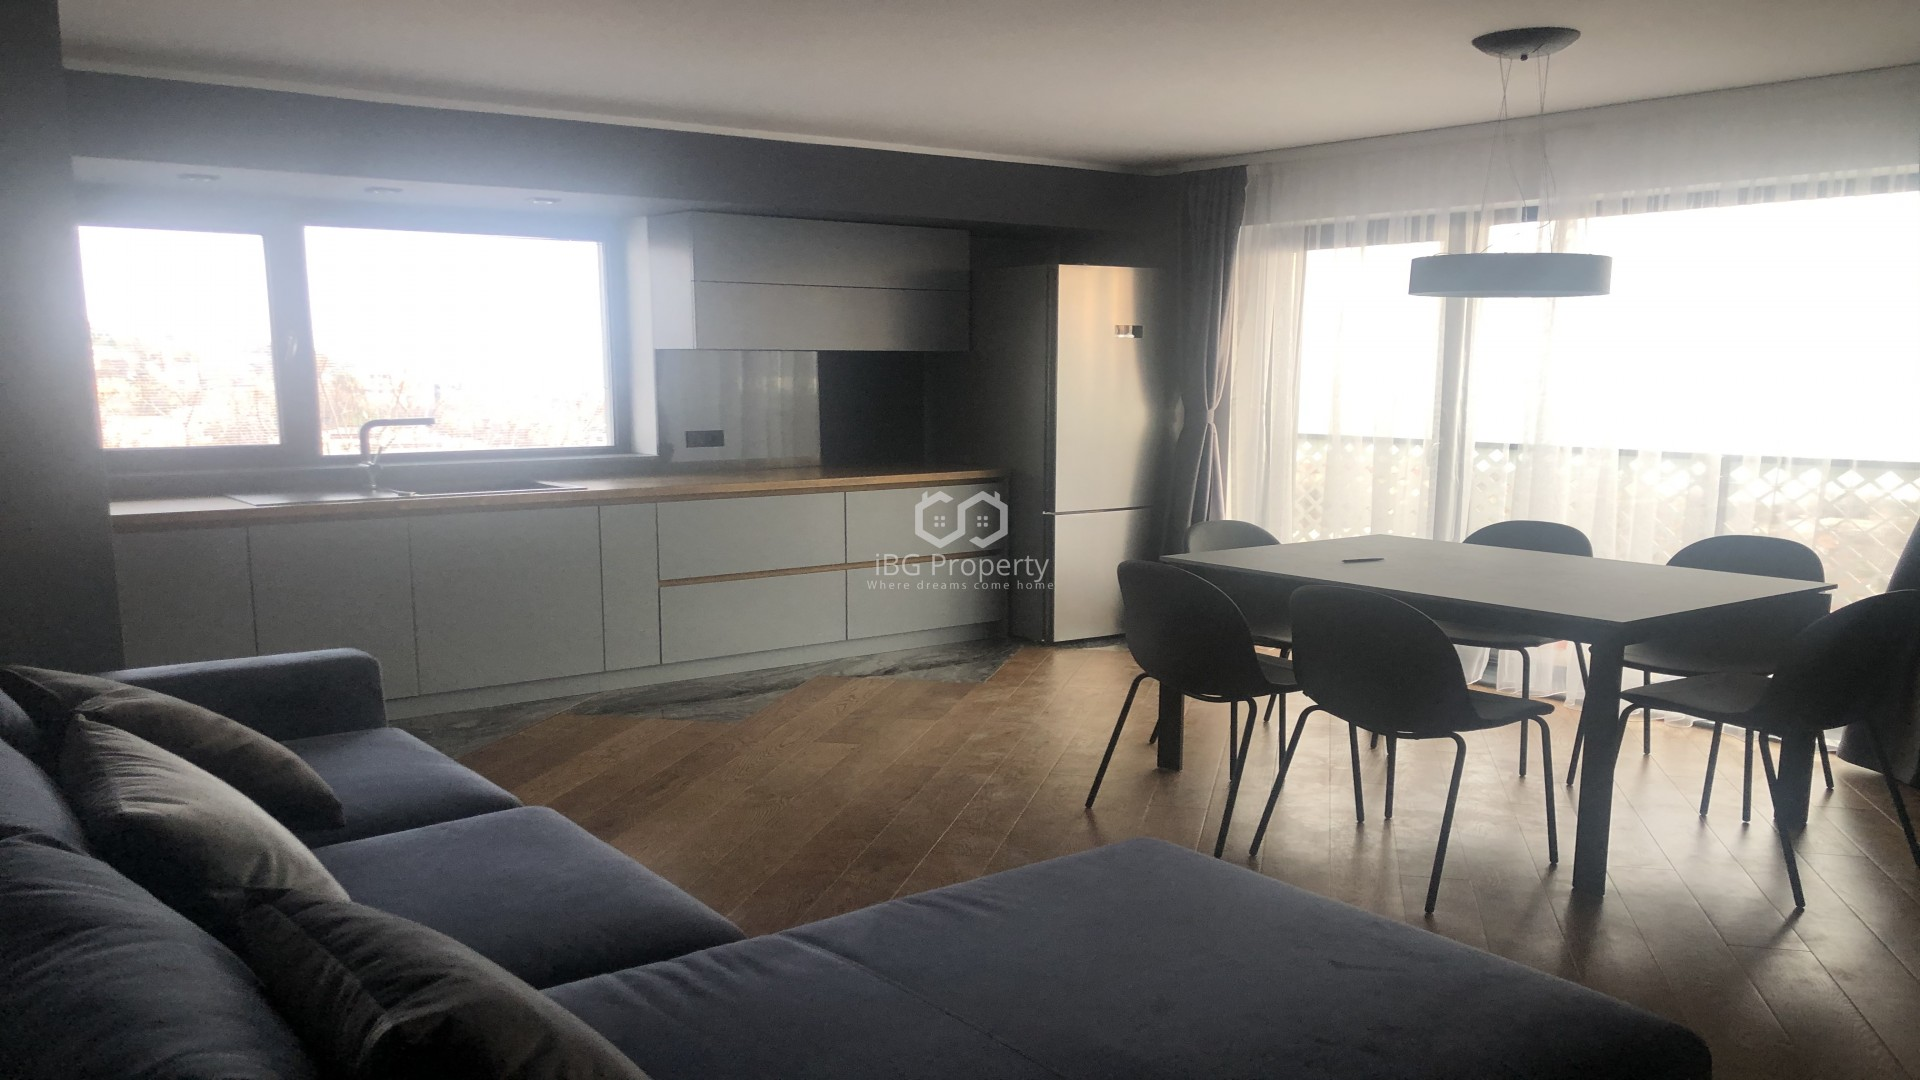 Luxusohnung in Varna 129 m2